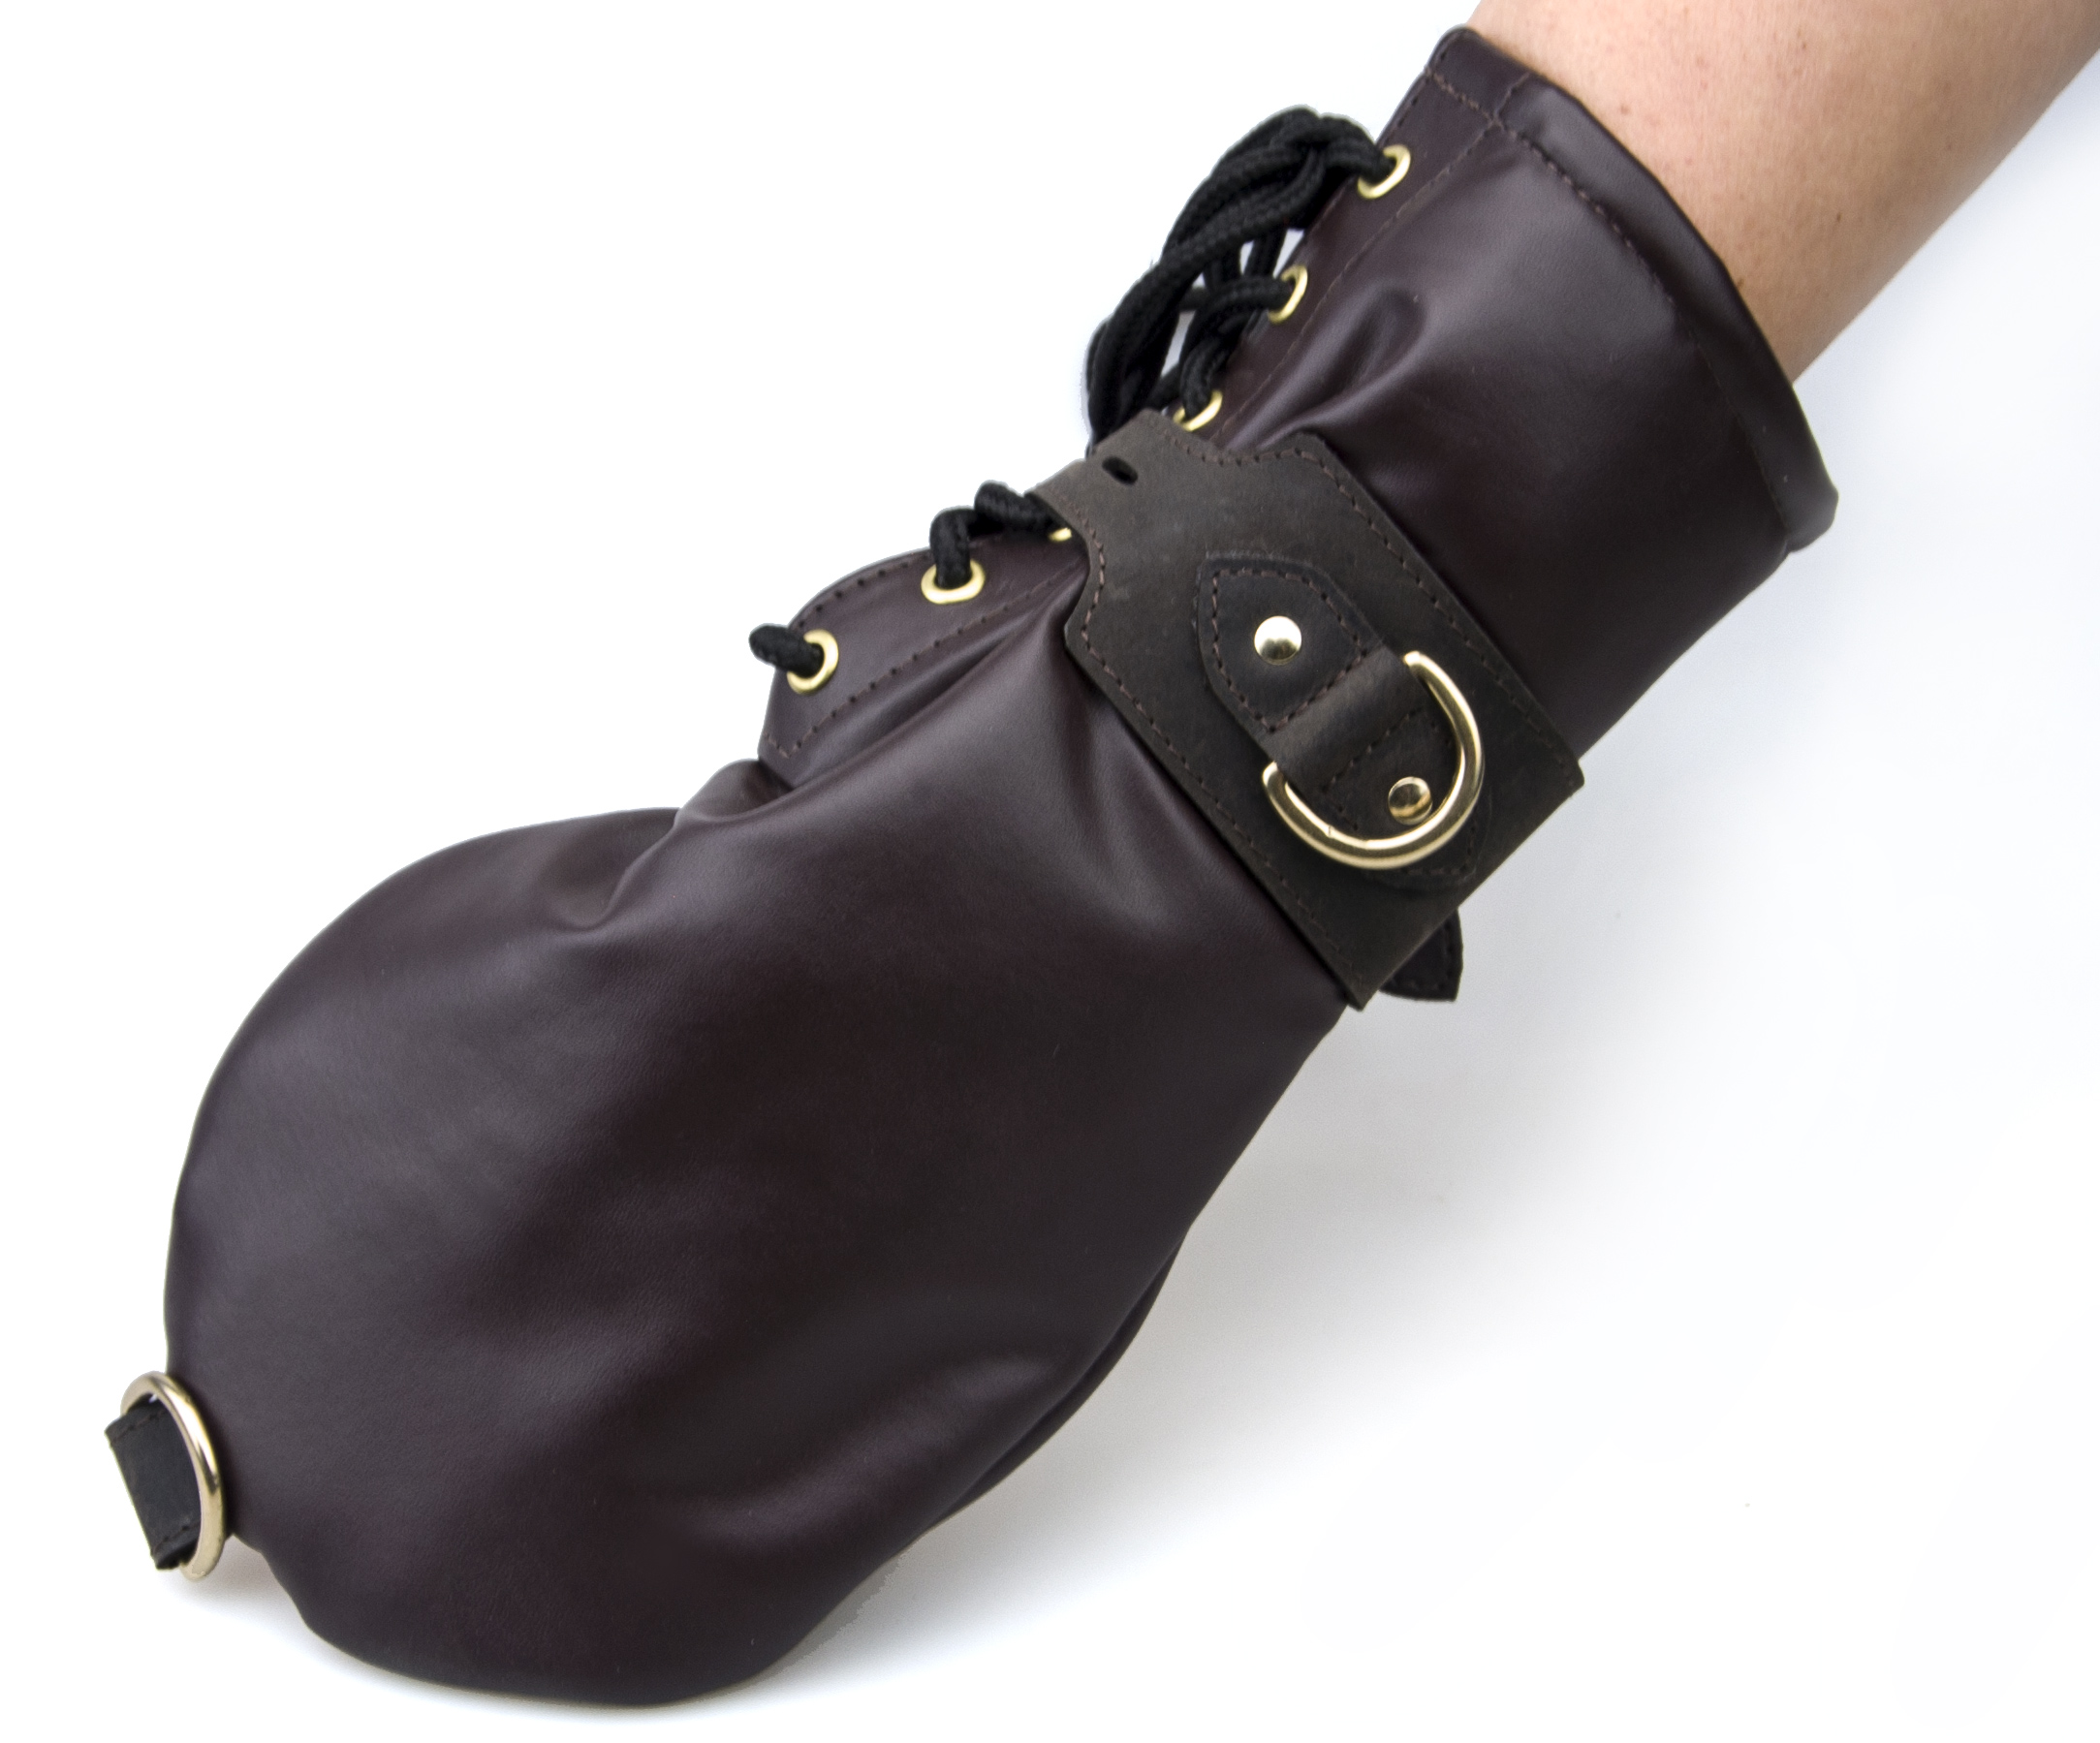 BOUND Nubuck Leather Bondage Mittens